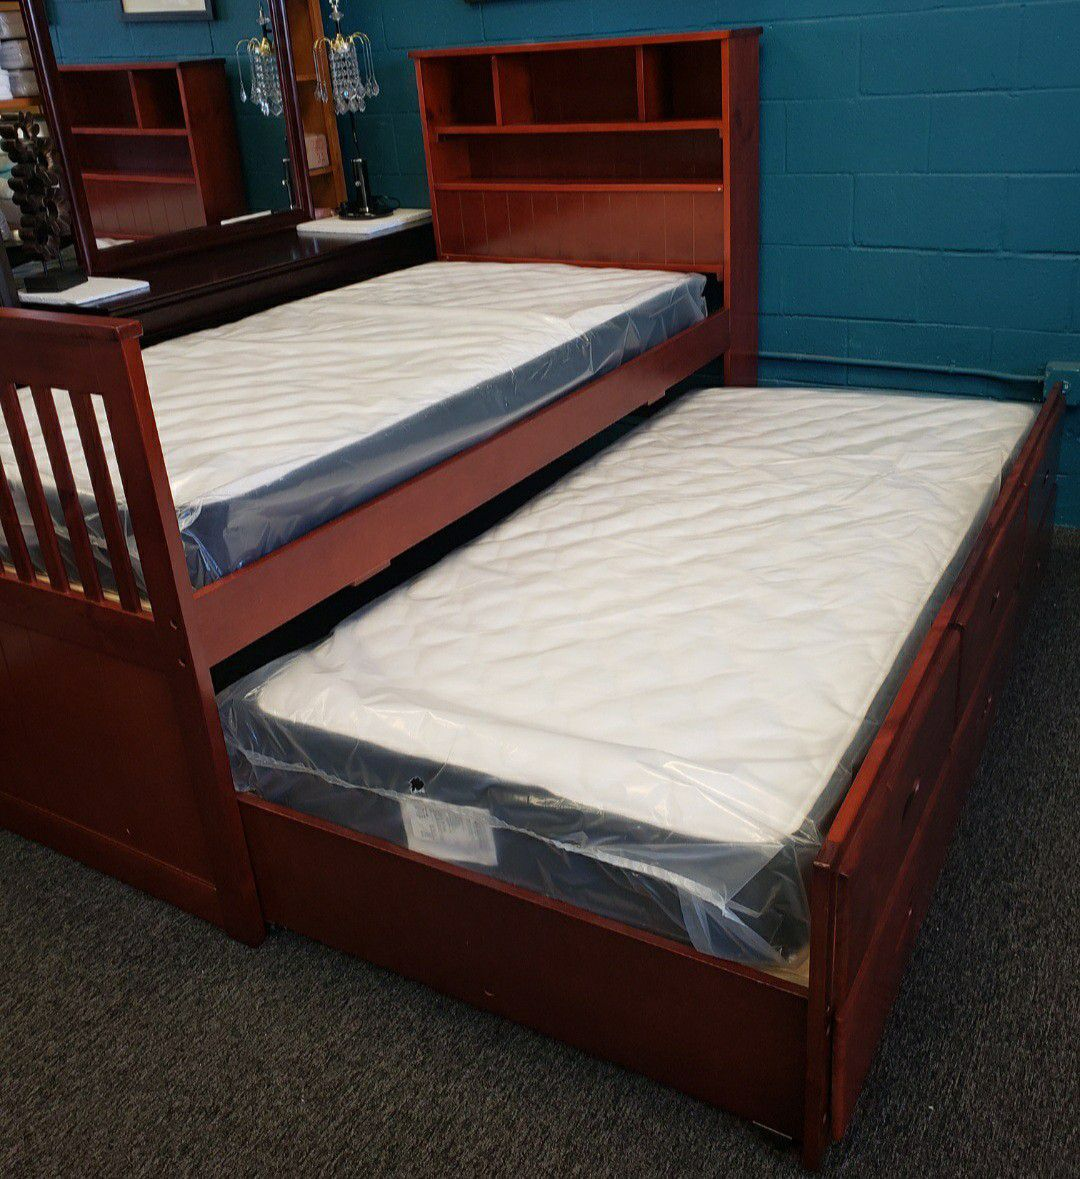 NEW TWIN/TWIN BED w/ DRAWERS AND INCLUDED